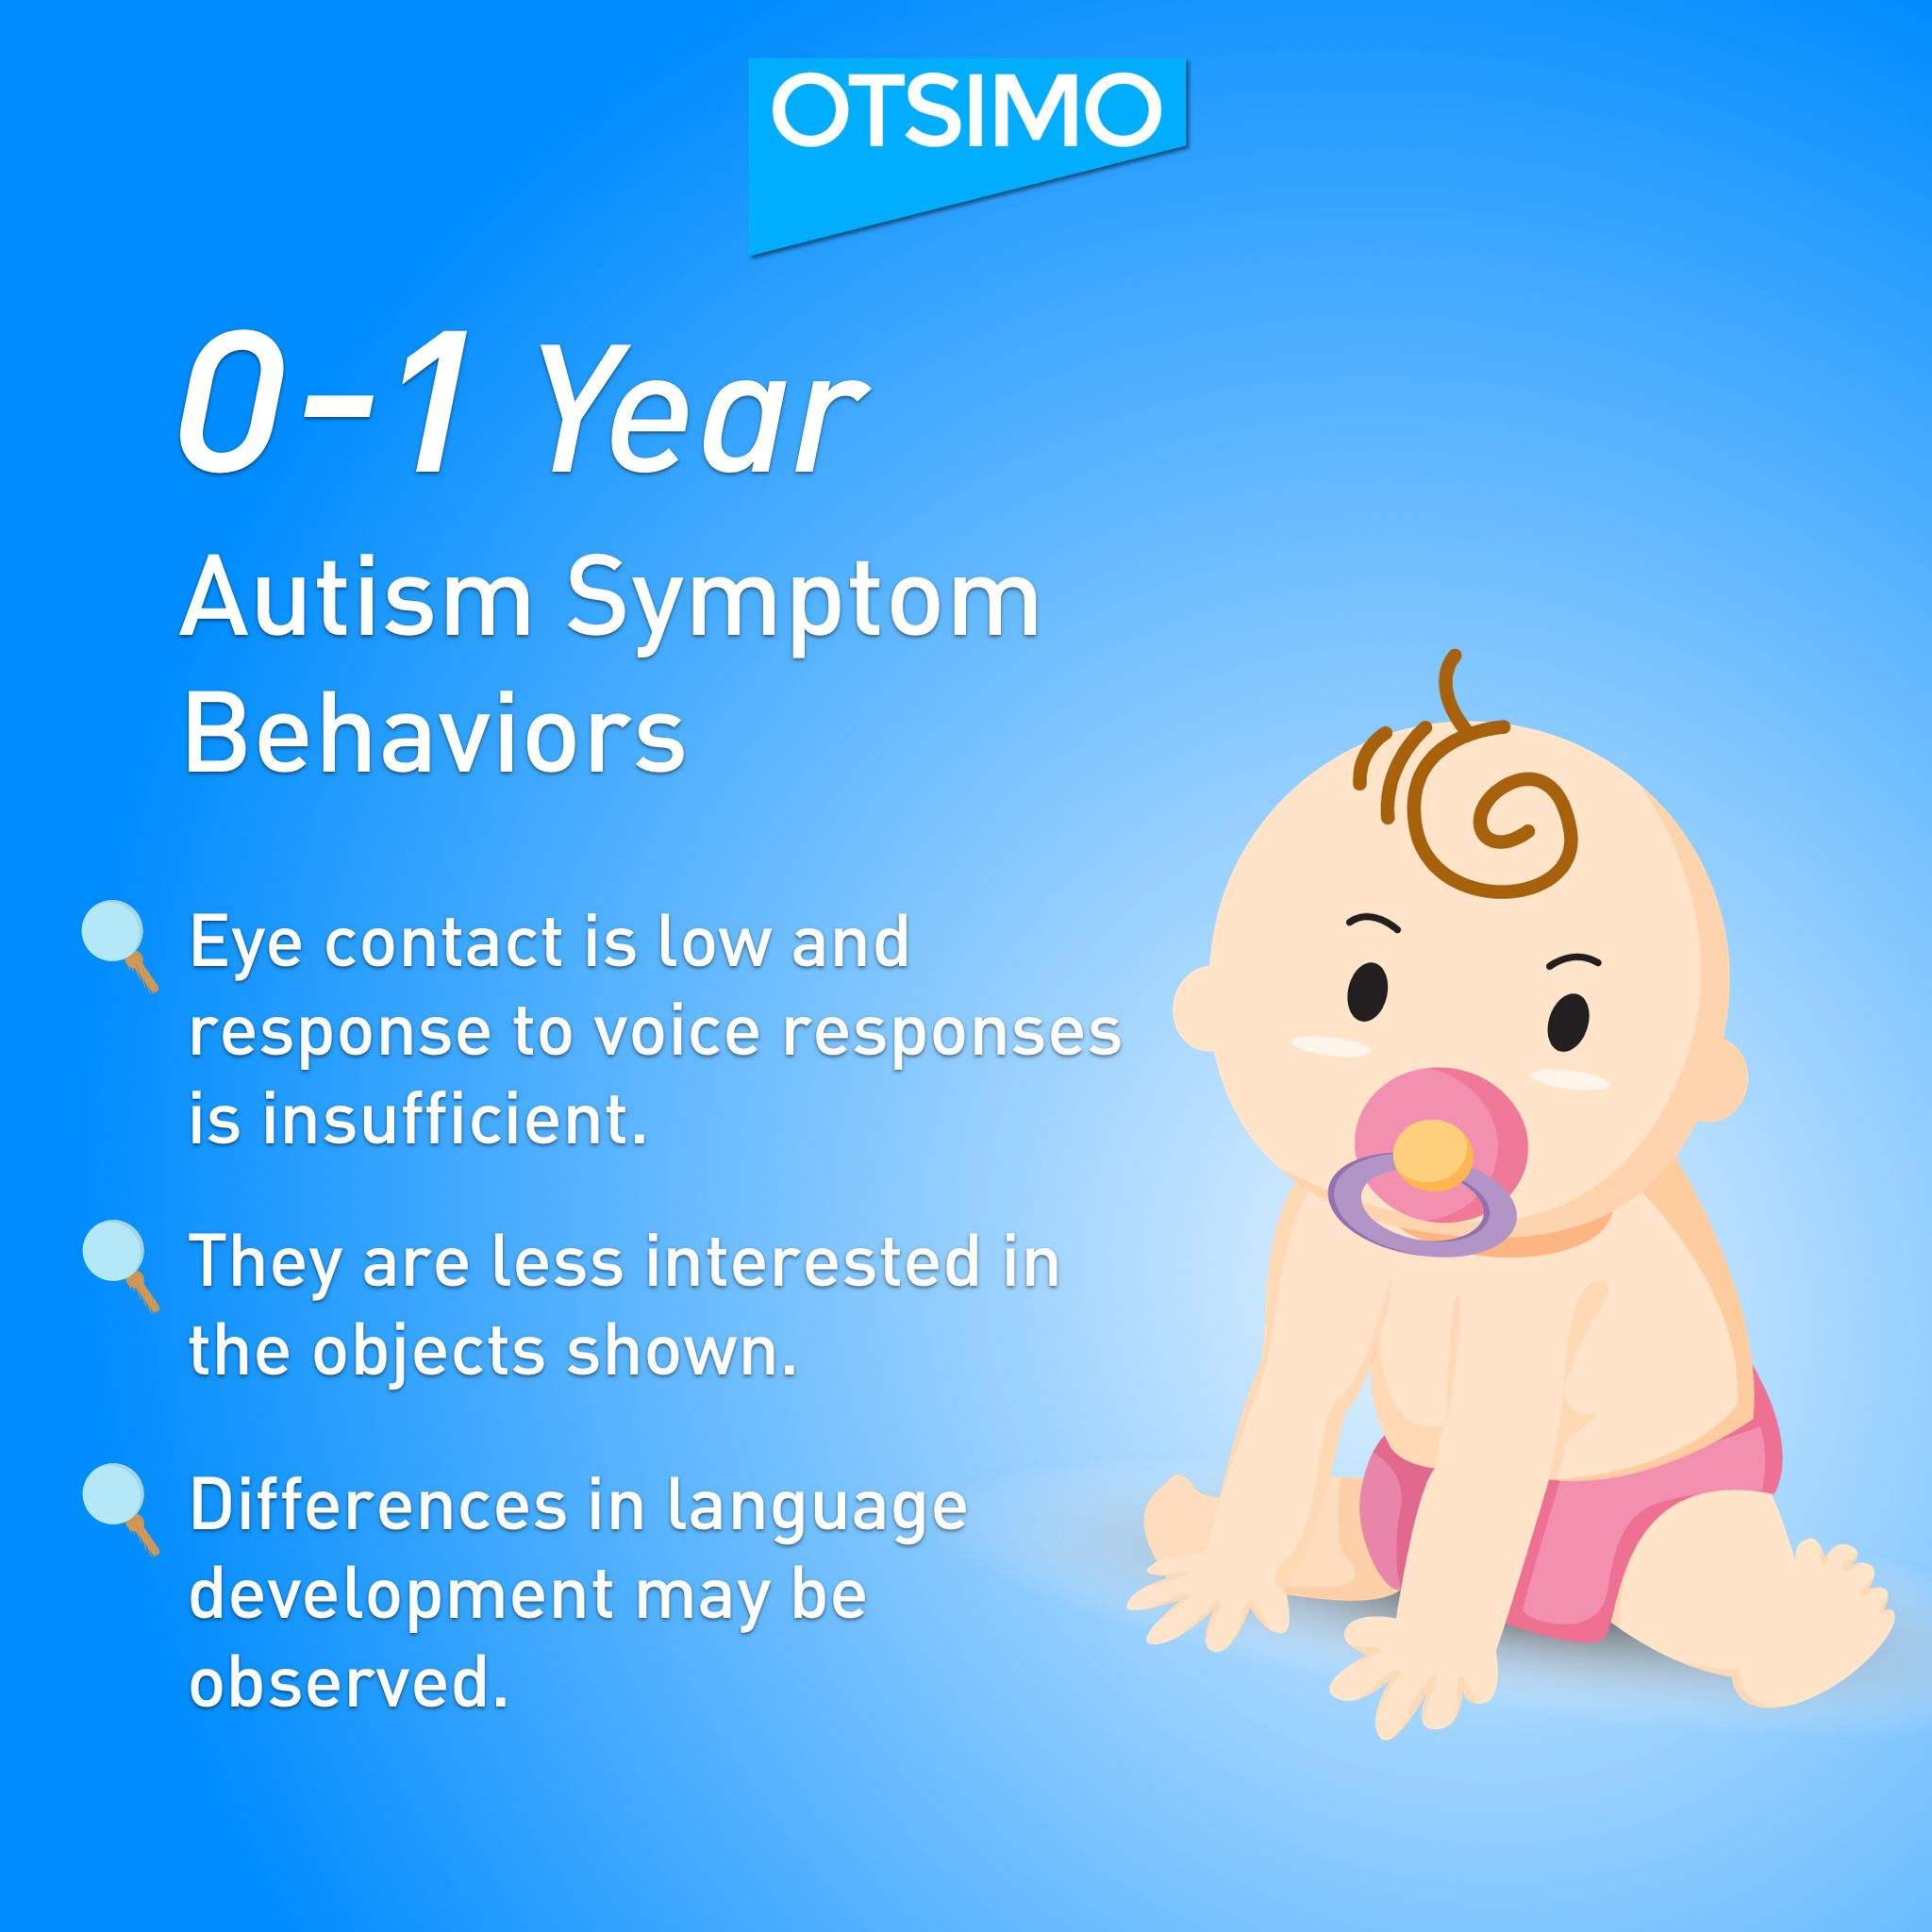 What are the autism signs that can be observed in 0-1 year old ...